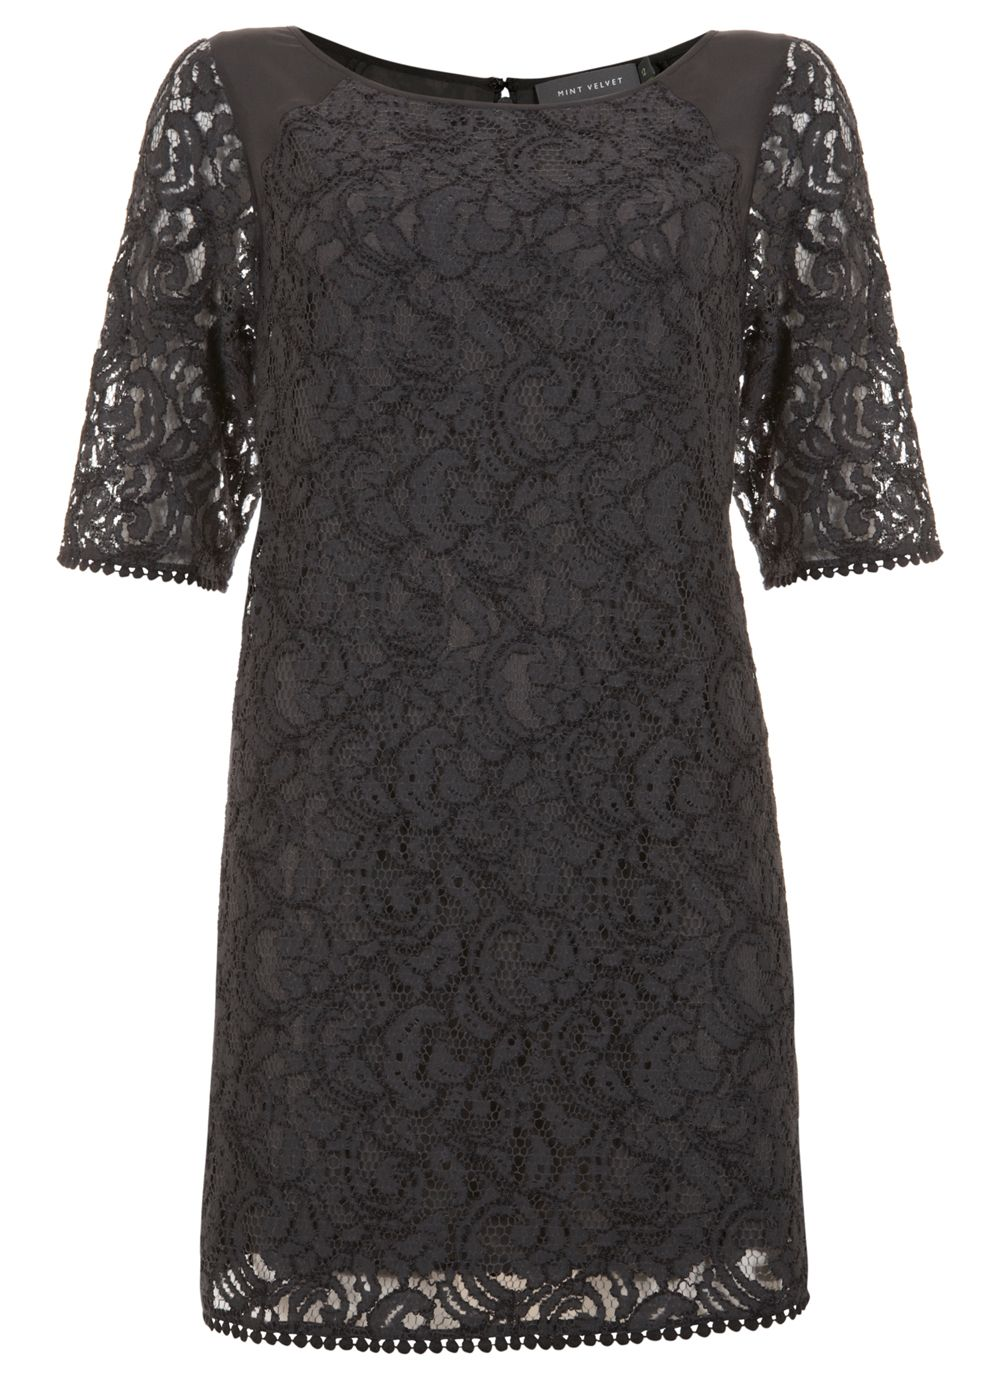 Slate lace t-shirt dress